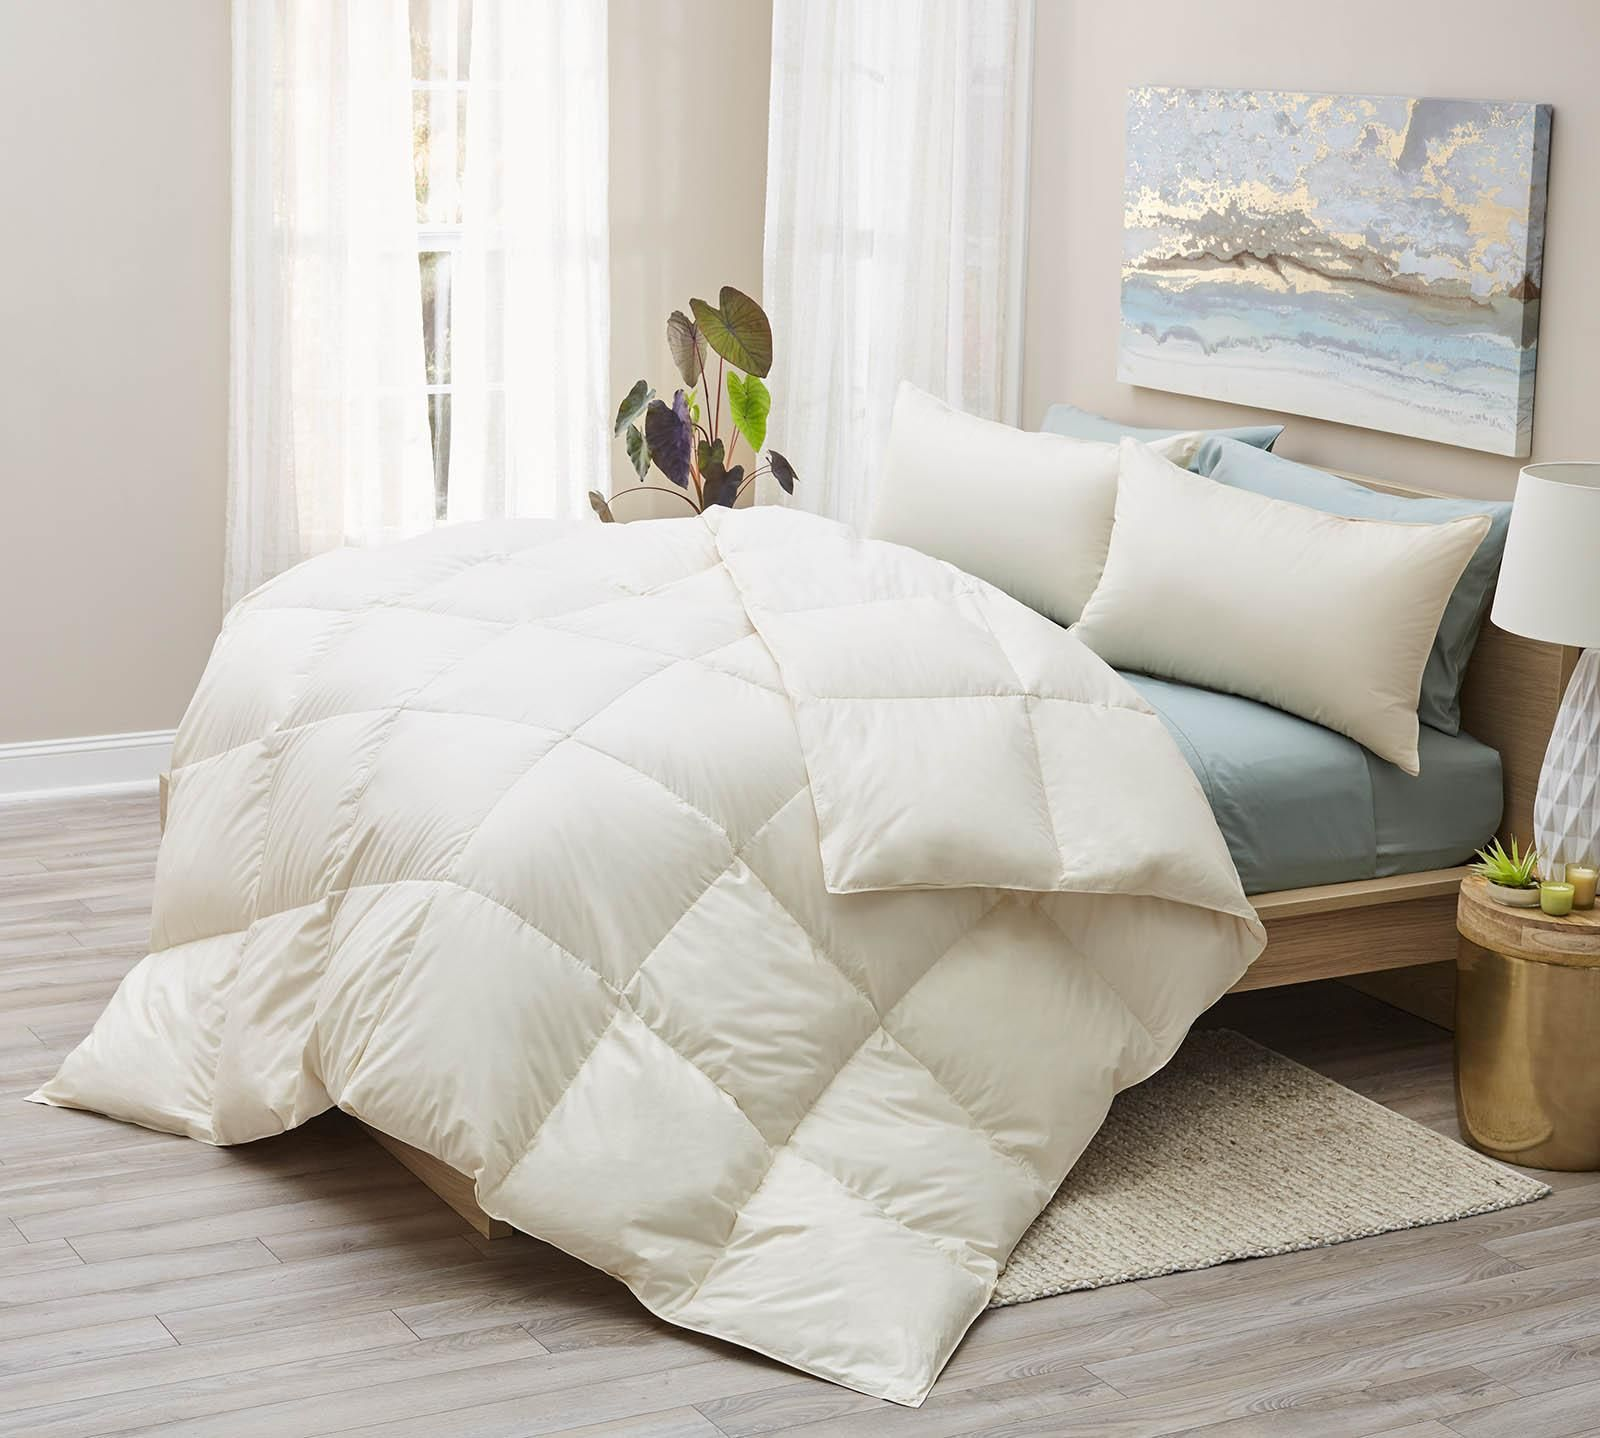 Shop For Your Lux Living Naturals Organic All Season Down Comforter At Mattress Firm This Cozy Comforter Will K Down Comforter Comforters White Down Comforter